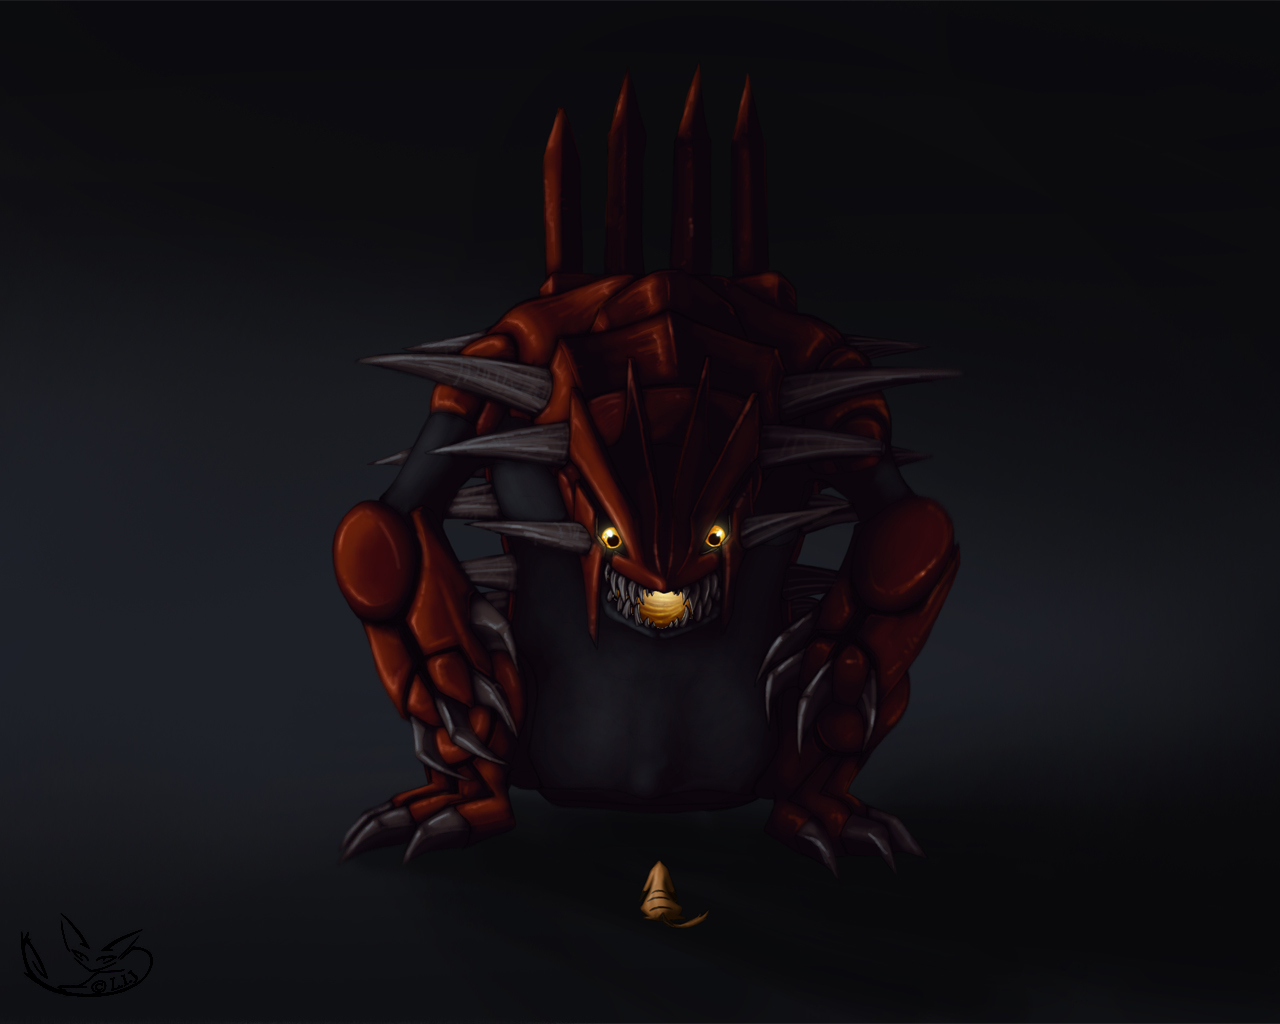 Pokemon Ruby And Sapphire Red Blue Pikachu Groudon Darkness Computer Wallpaper